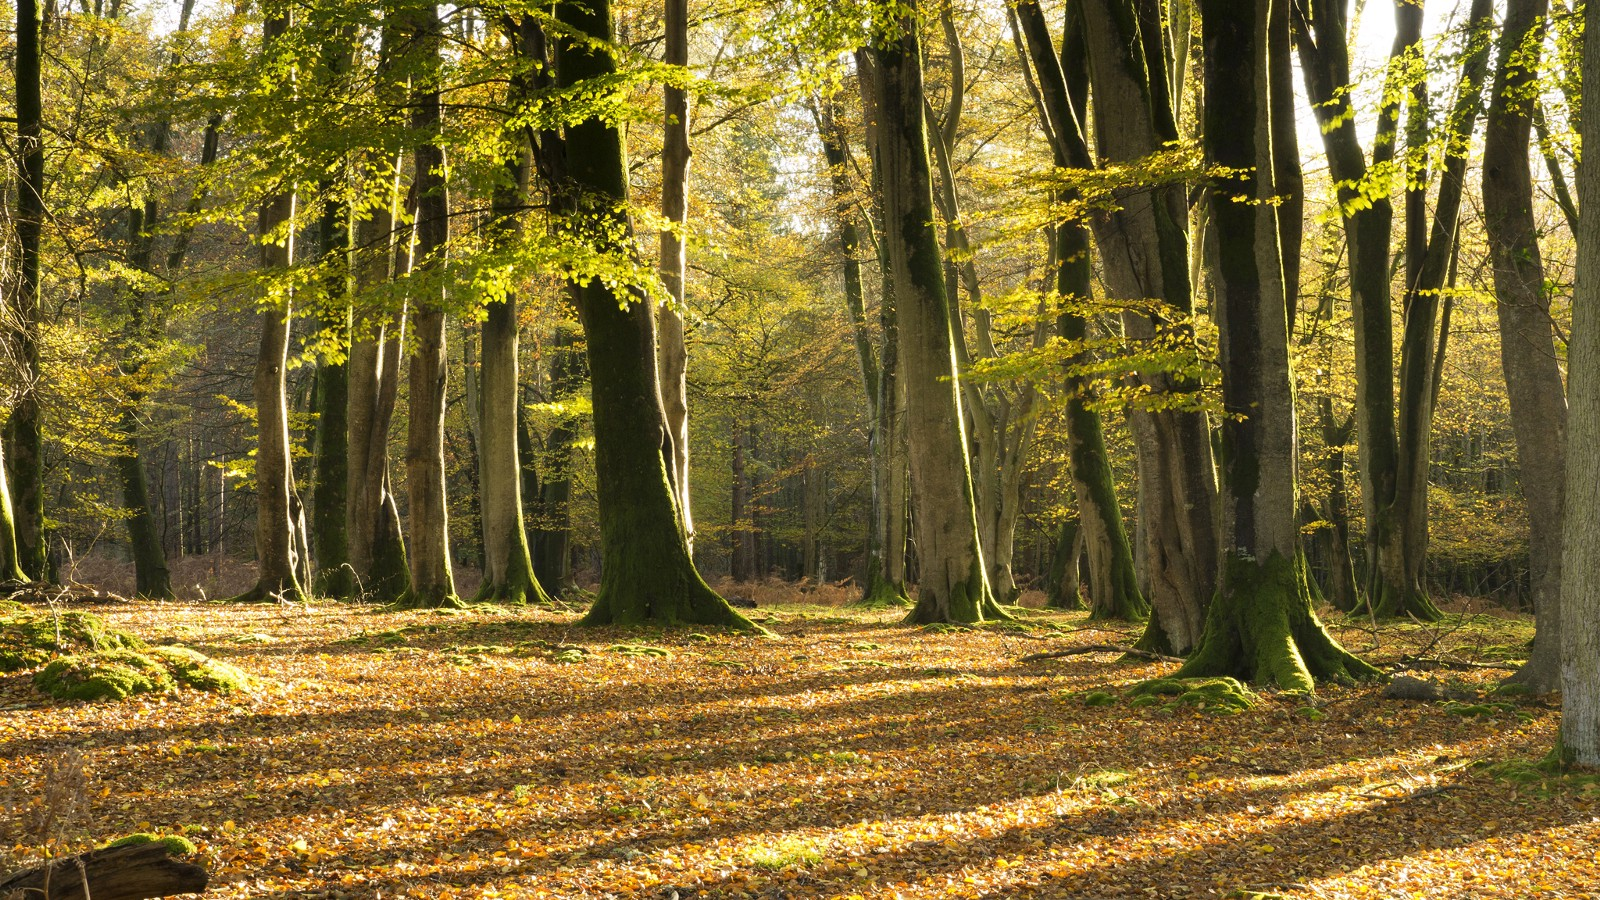 Beech tree forest, Hampshire, UK